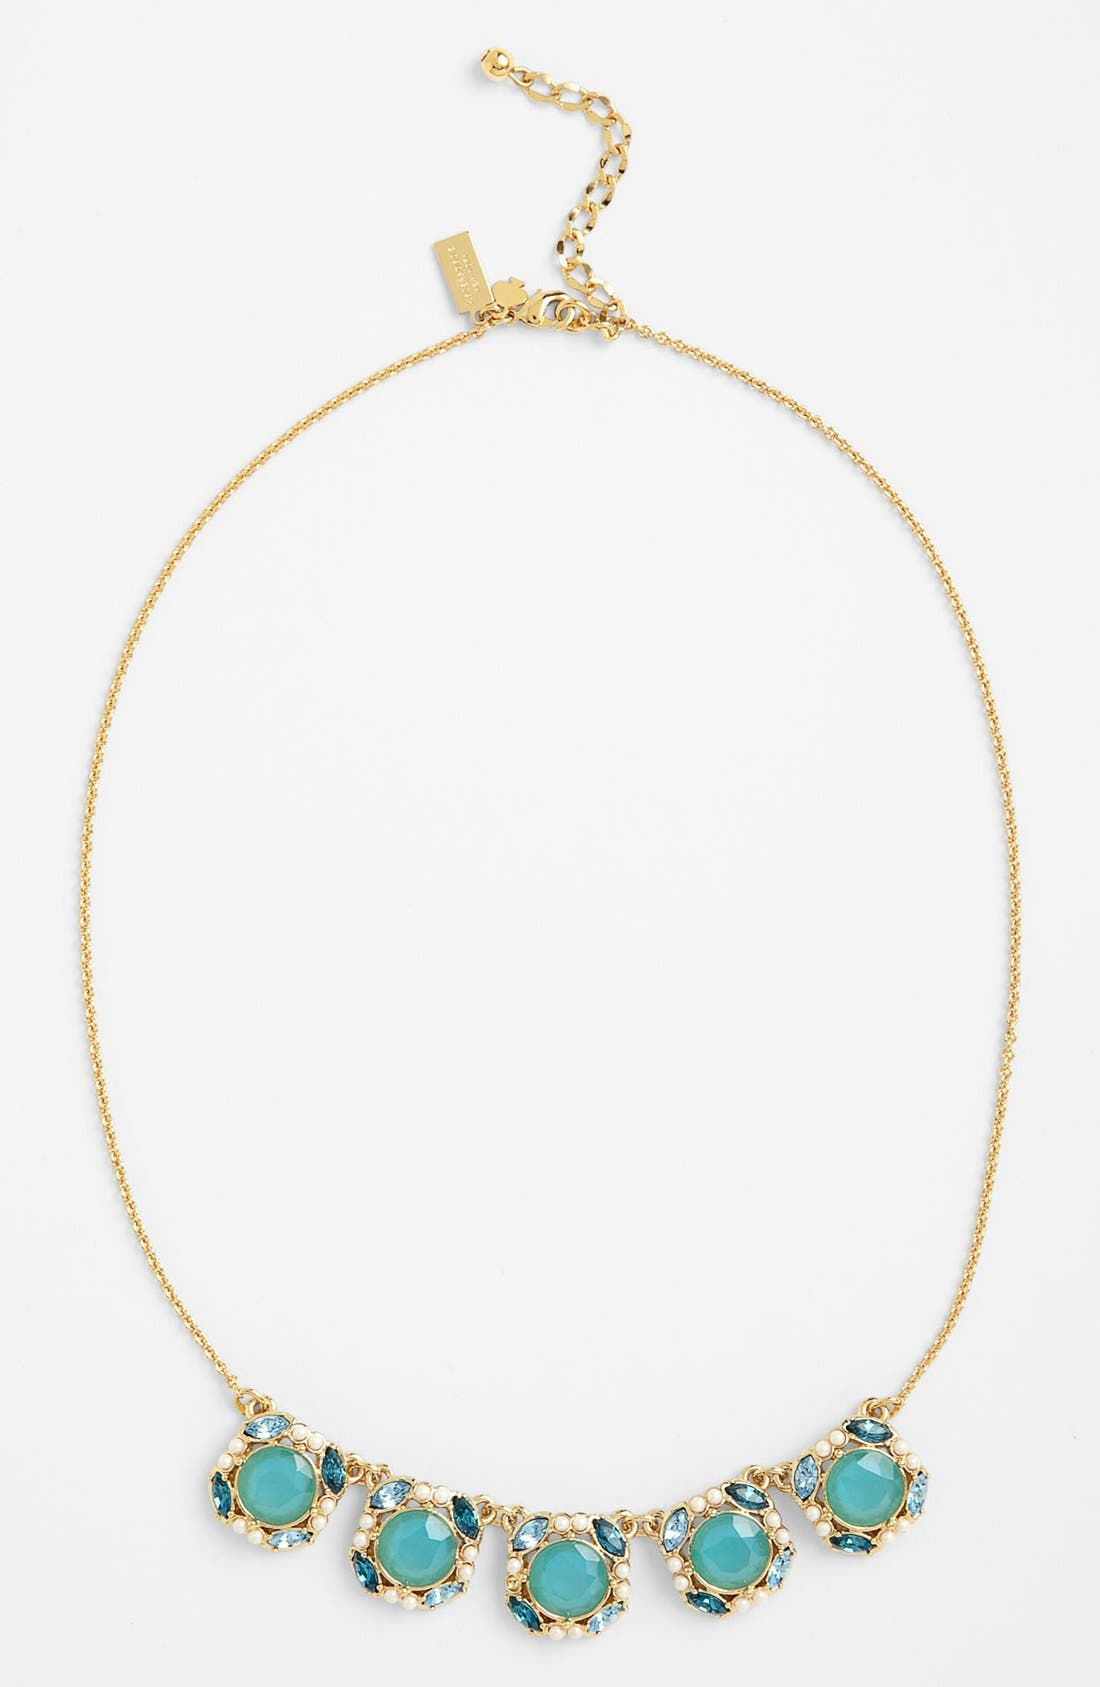 Main Image - kate spade new york 'belle fleur' frontal necklace